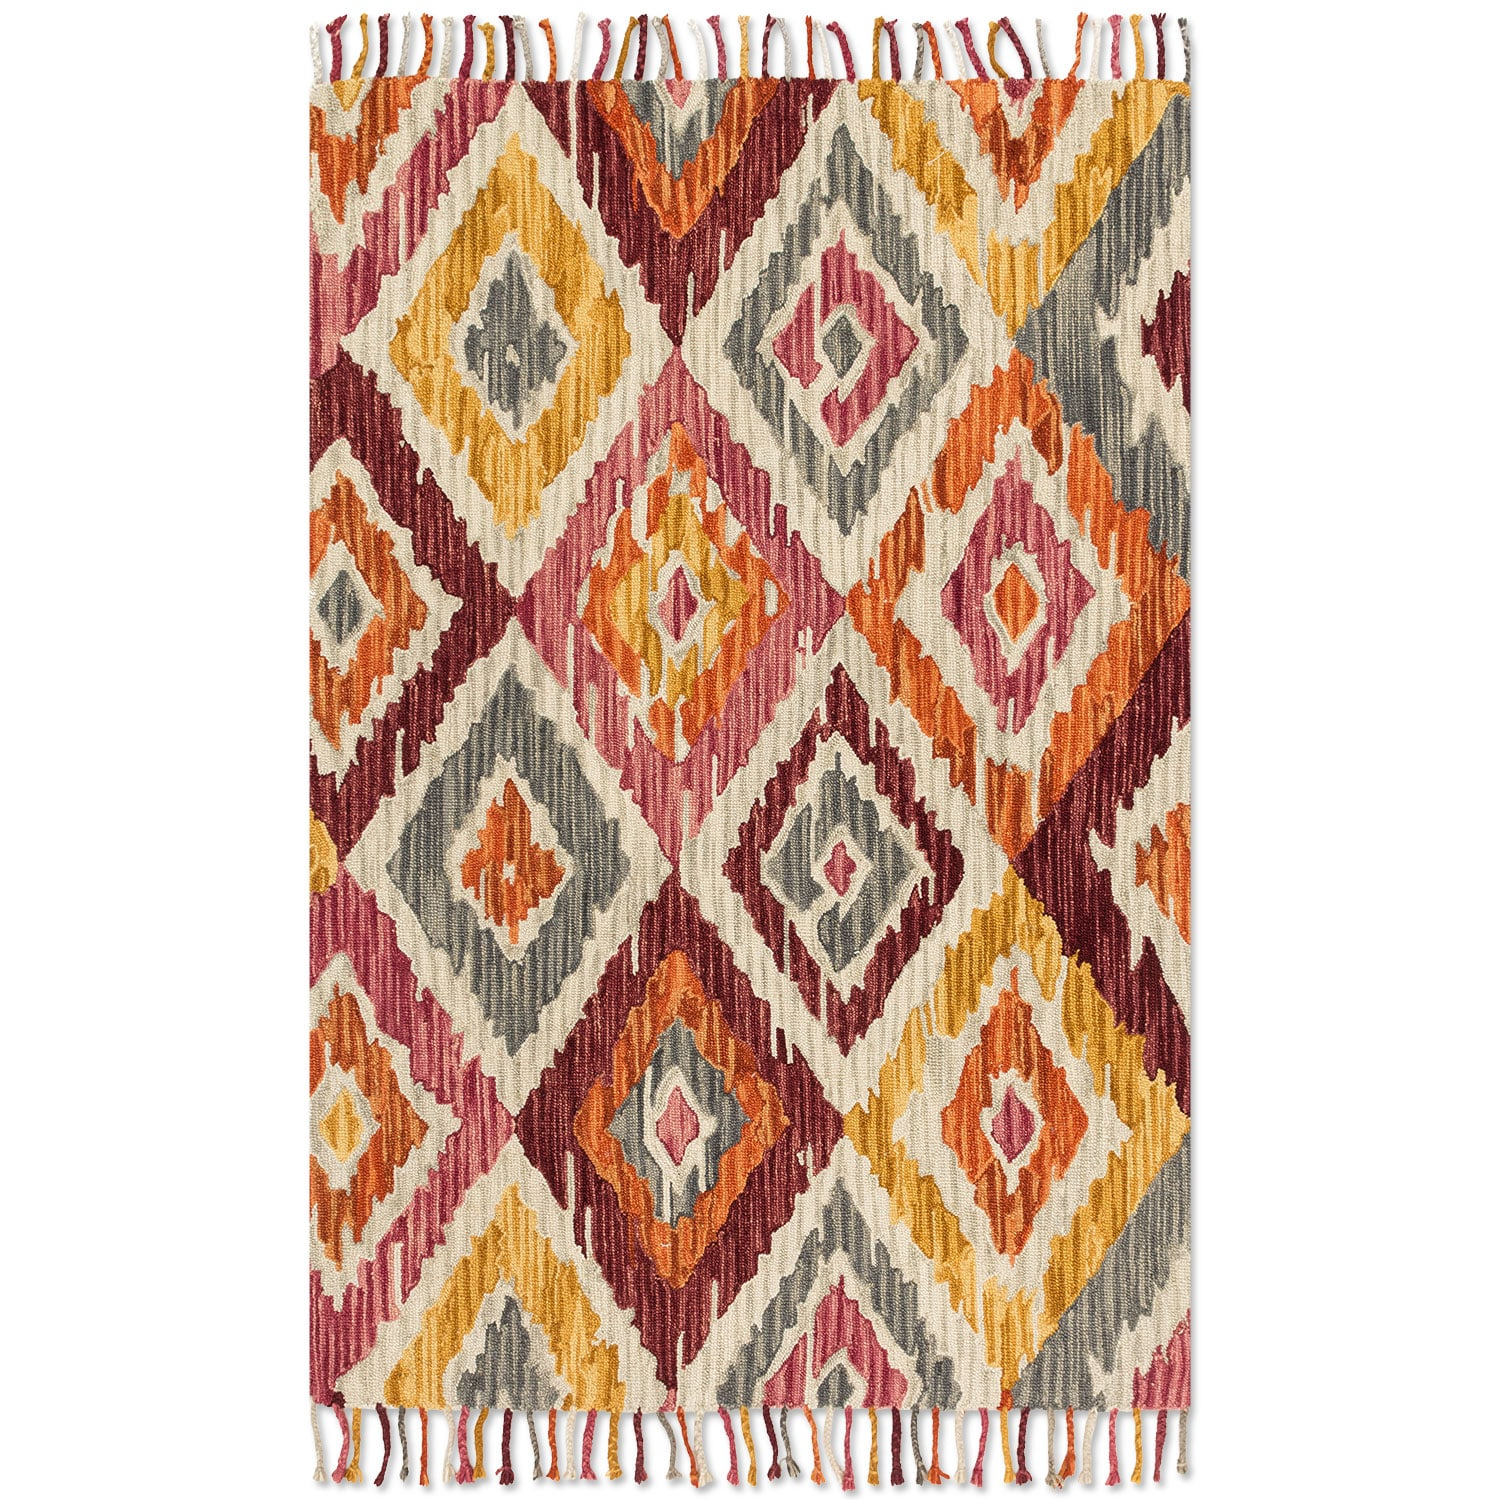 Rugs - Brushstroke 8' x 10' Rug - Silver Sunset